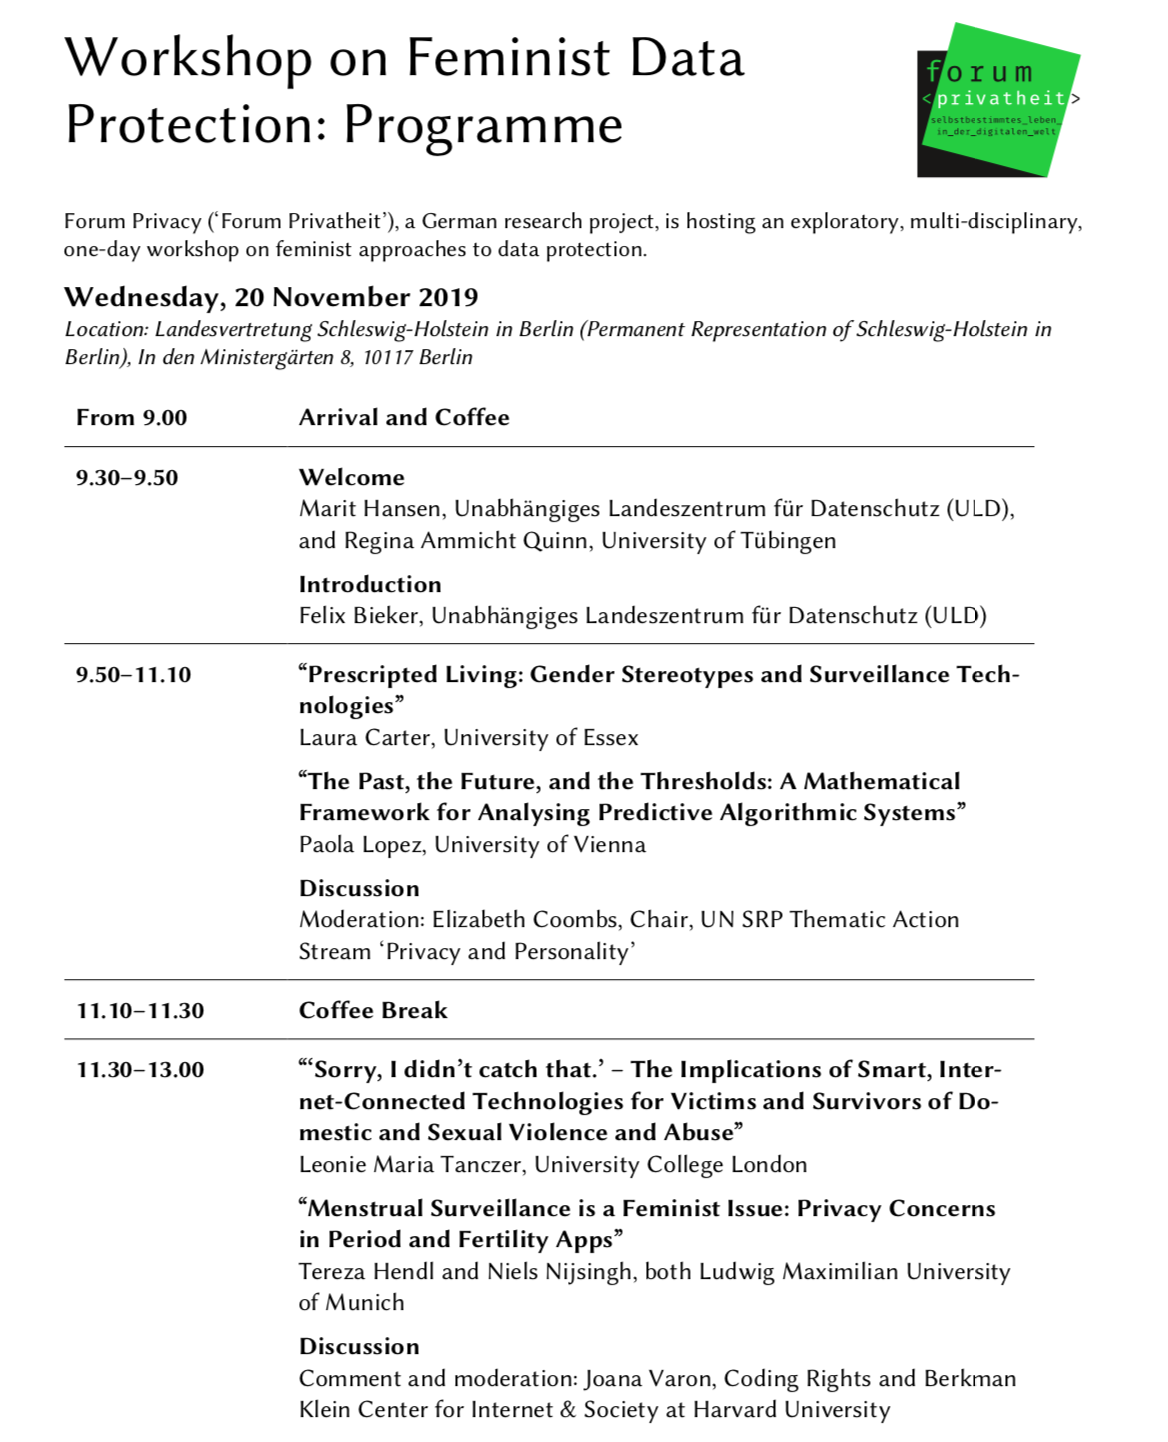 Programme of Workshop p1